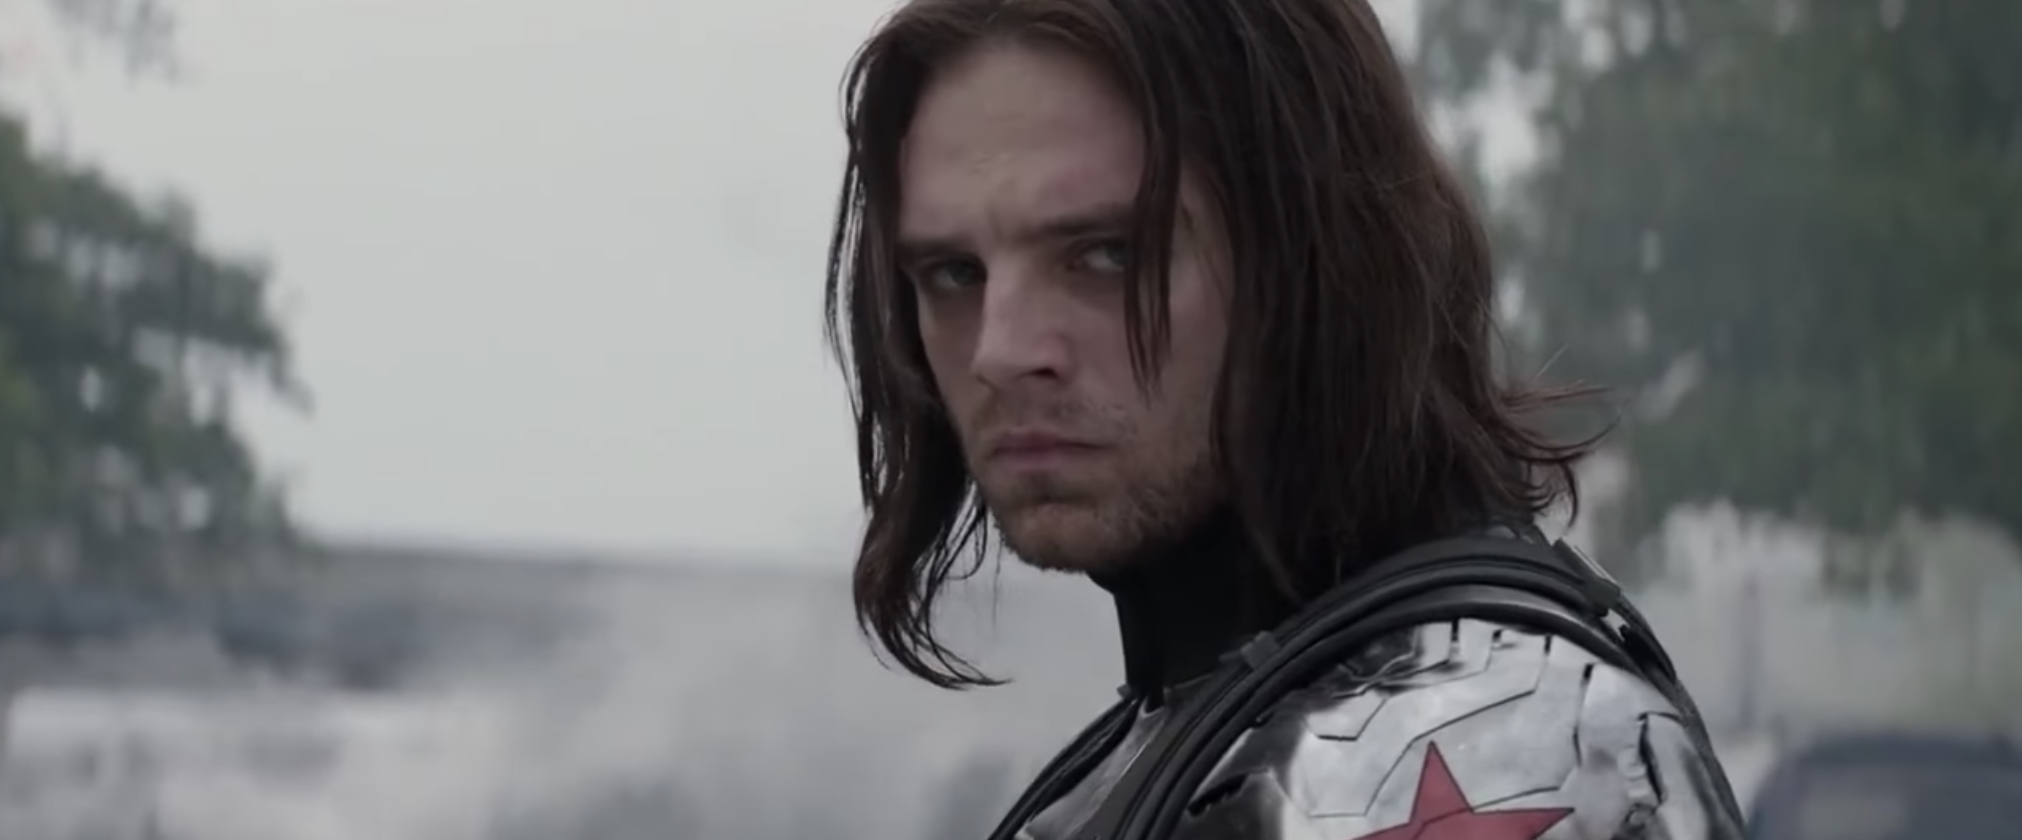 """Bucky?"" ""Who the hell is Bucky?""—galactichan"